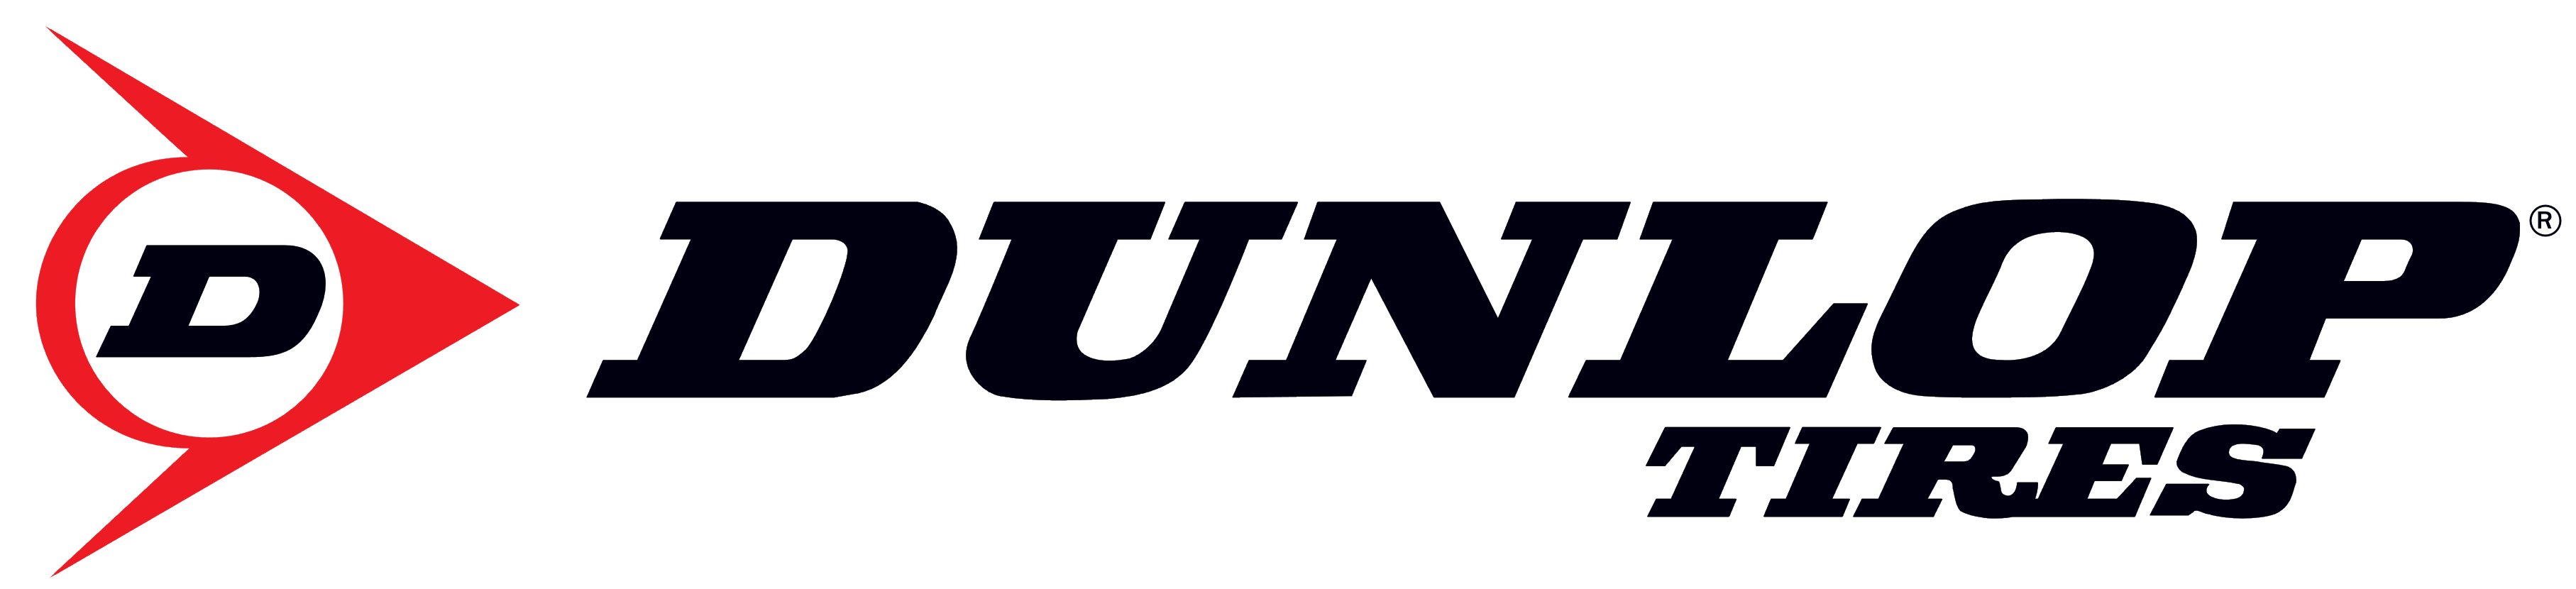 Image result for dunlop tires logo png